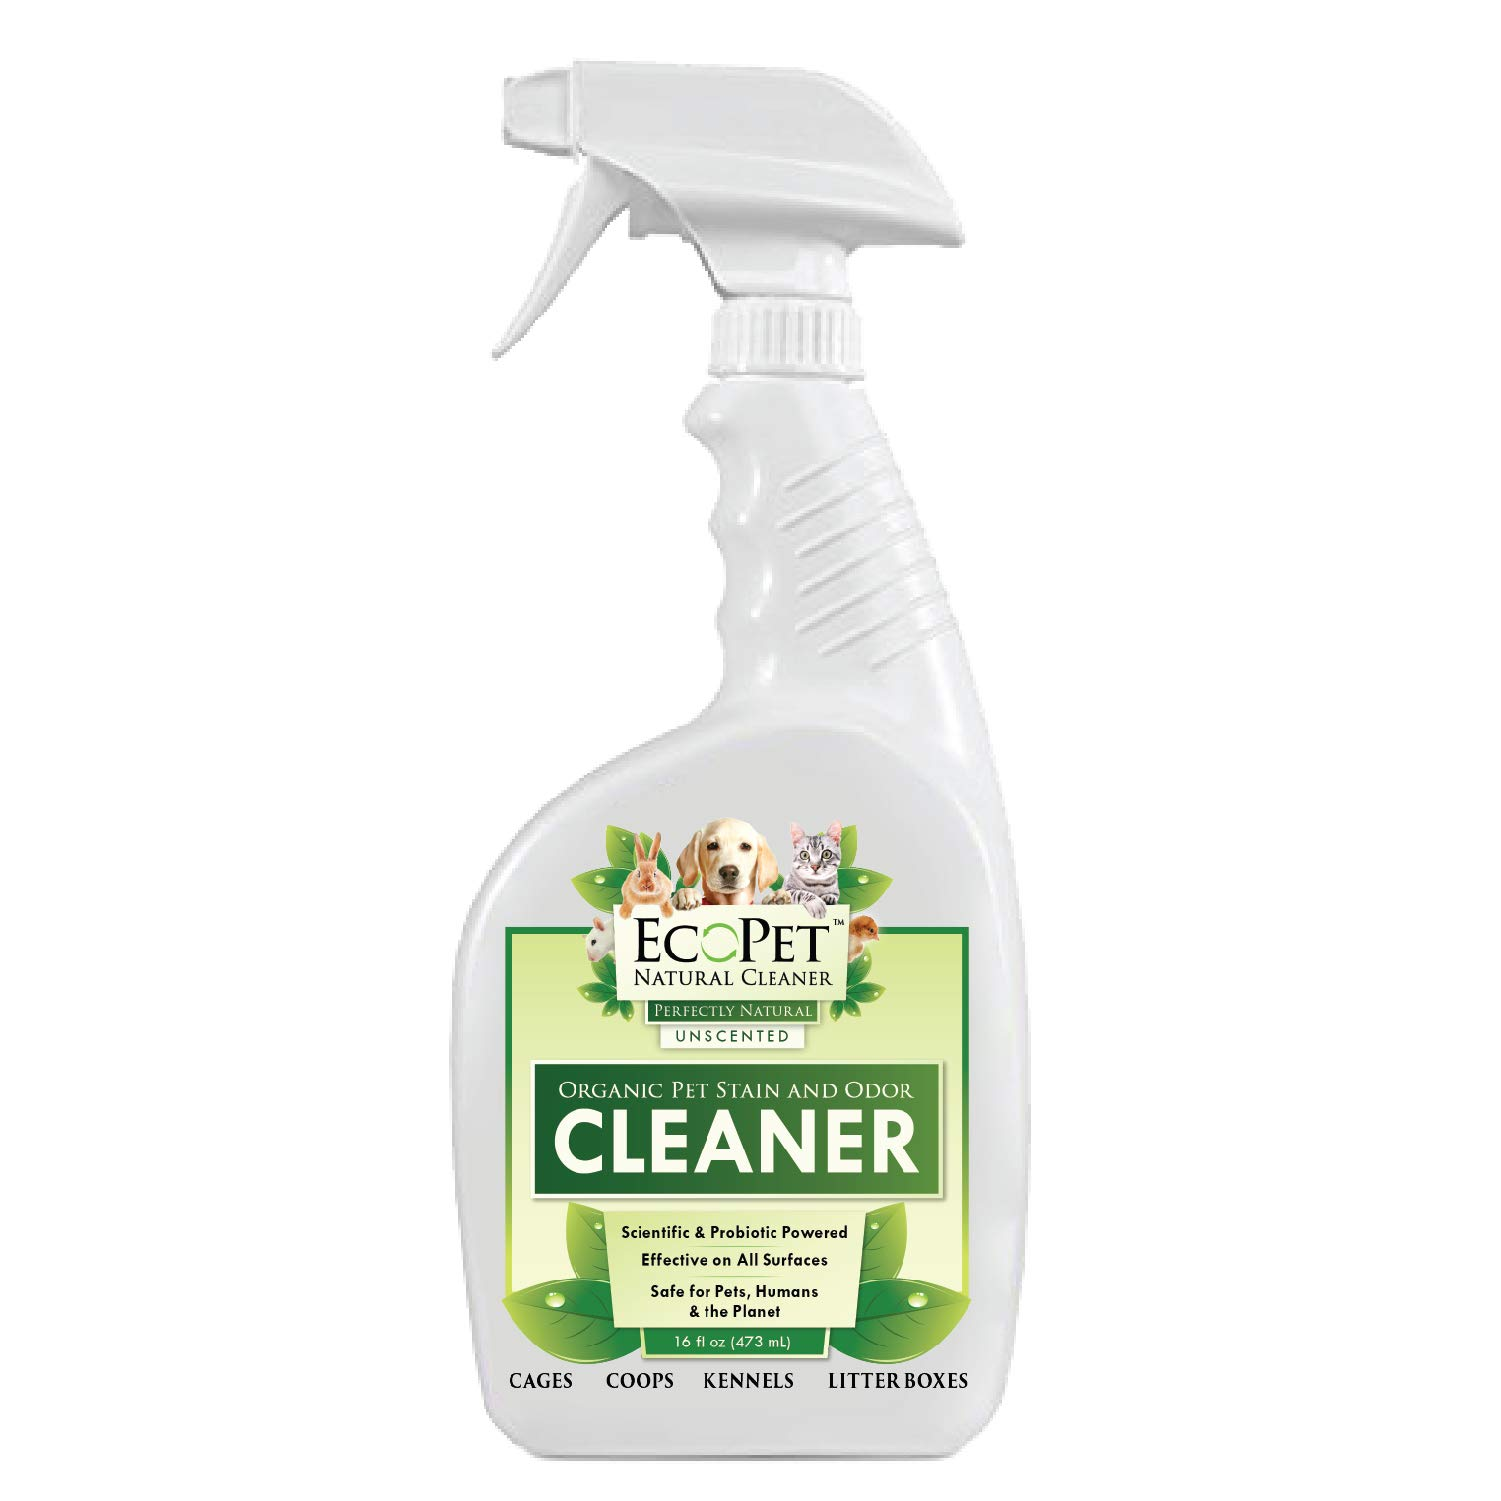 EcoPet Natural Cleaner and Dog Urine Odor Eliminator - Probiotic Powered Multi Surface Pet Odor and Stain Remover - Non-Toxic Dog Carpet Cleaner and Pet Stain Eraser, Unscented, Trigger Spray, 16oz